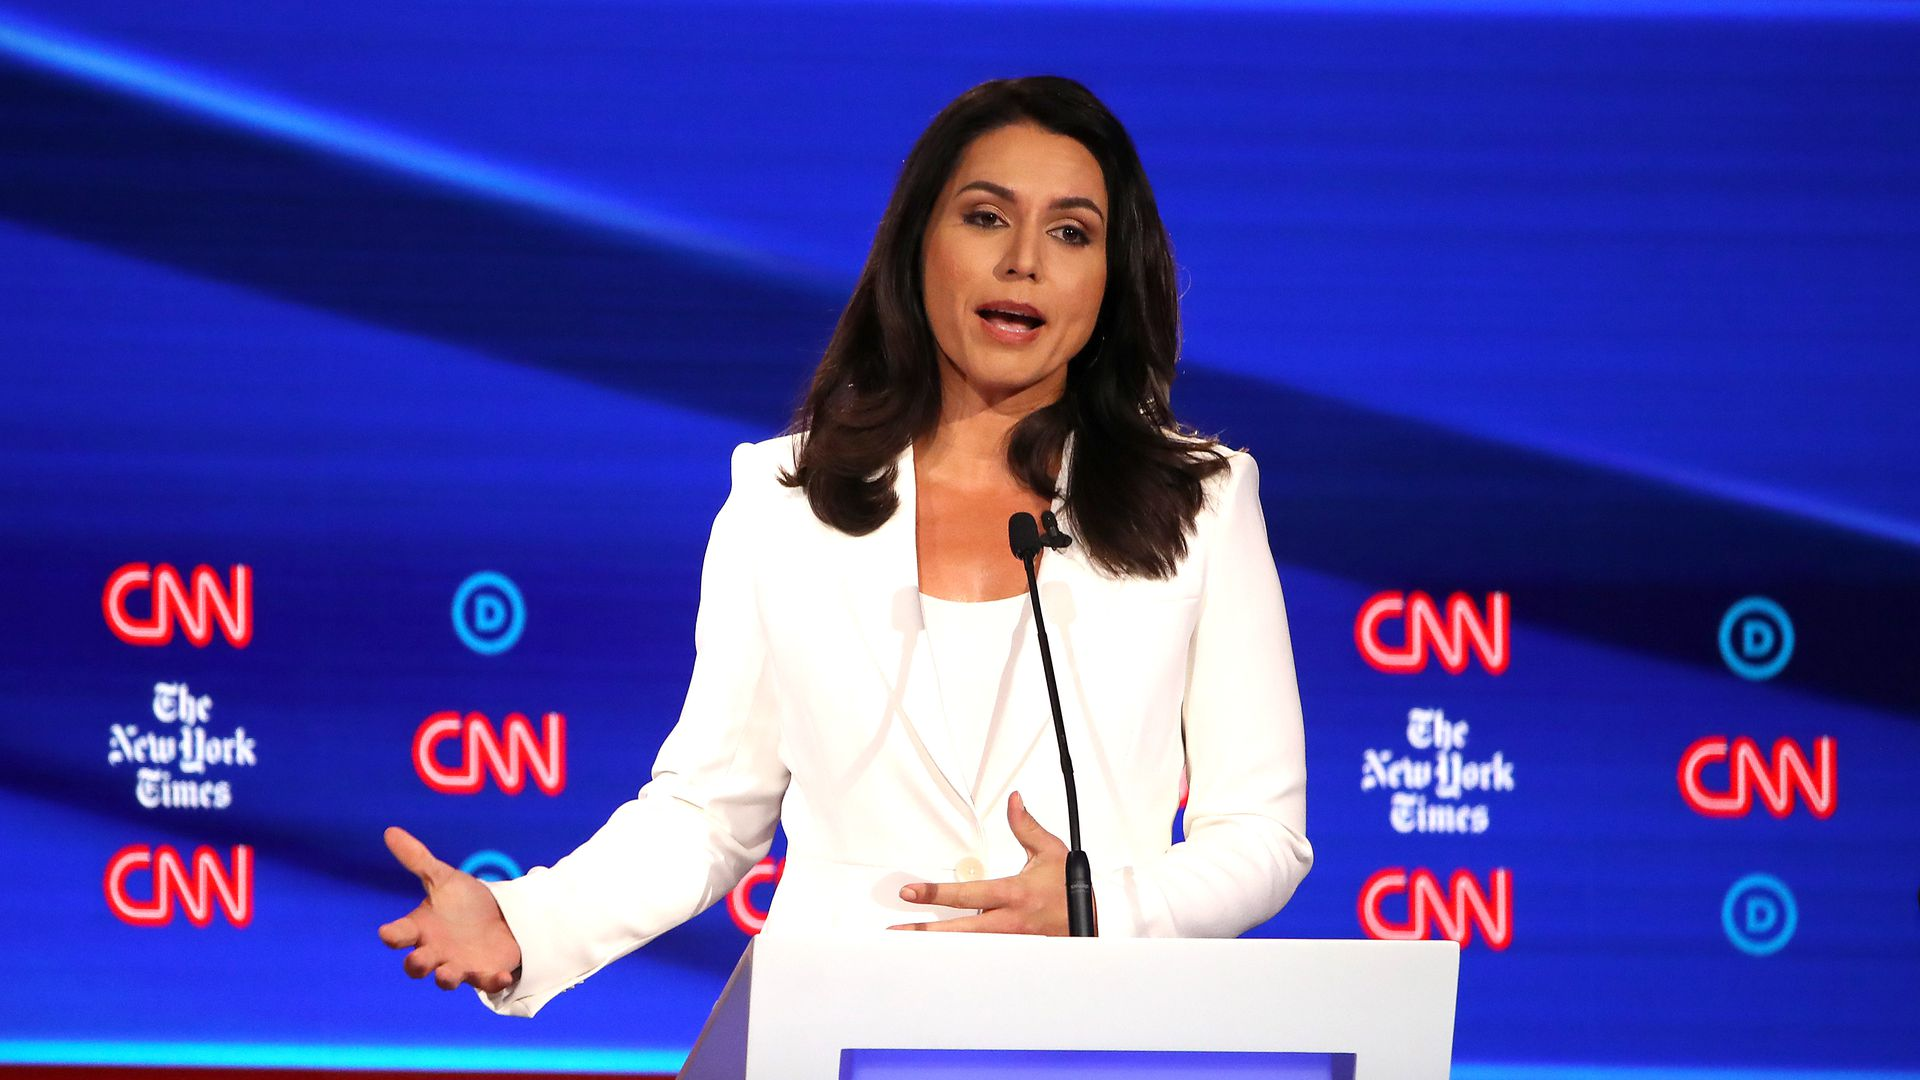 New York Election 2020.Tulsi Gabbard Won T Seek Re Election To Congress In 2020 Axios